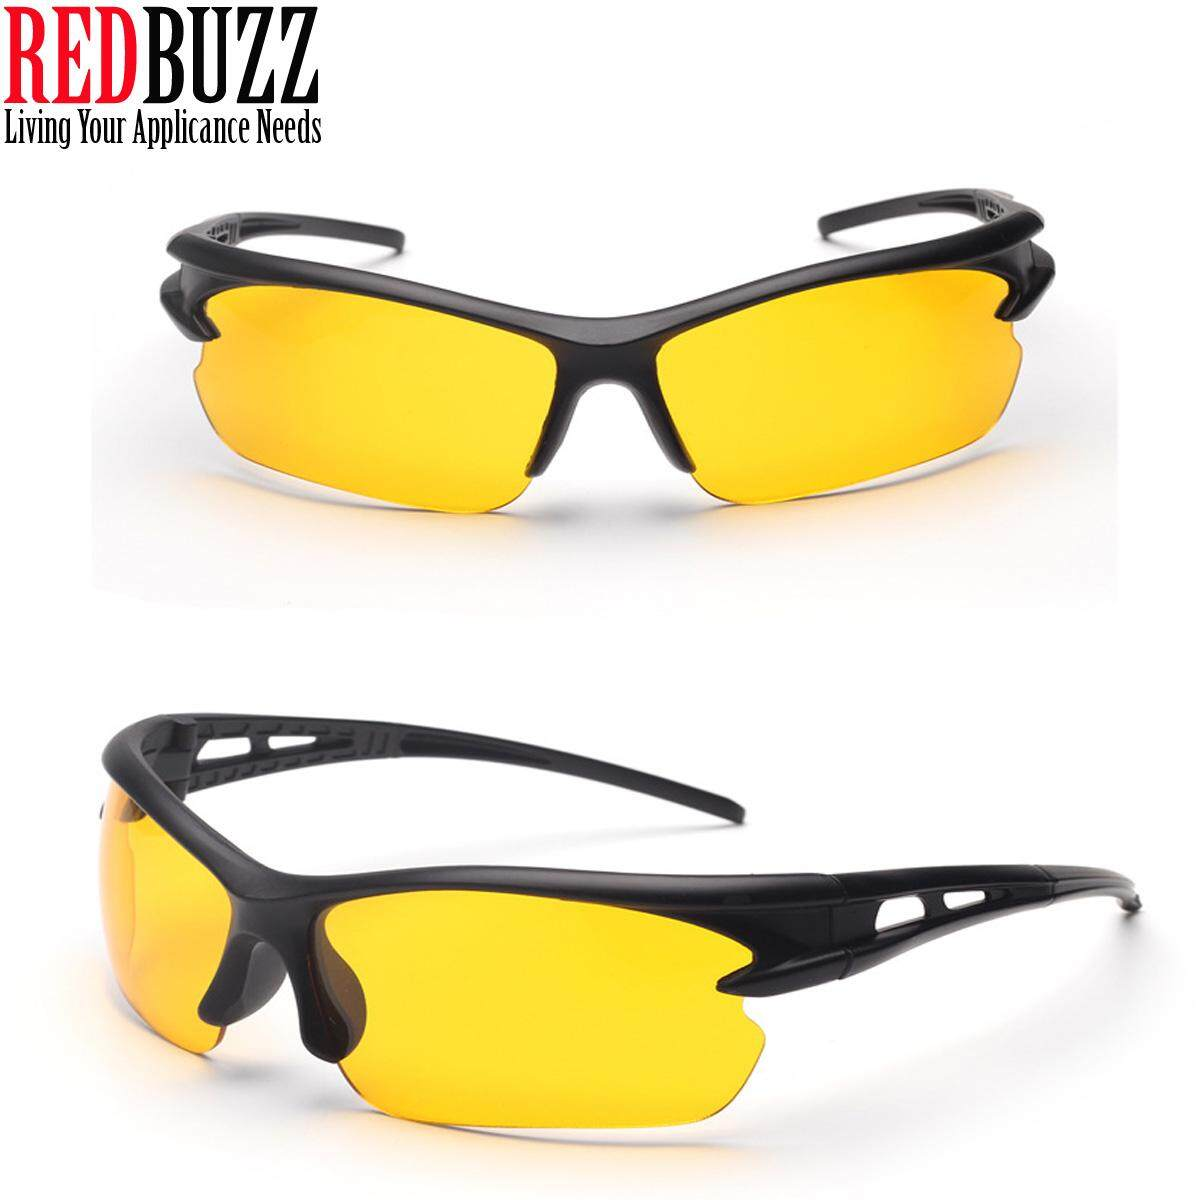 718c7deea2 Men Sunglasses - Buy Men Sunglasses at Best Price in Malaysia